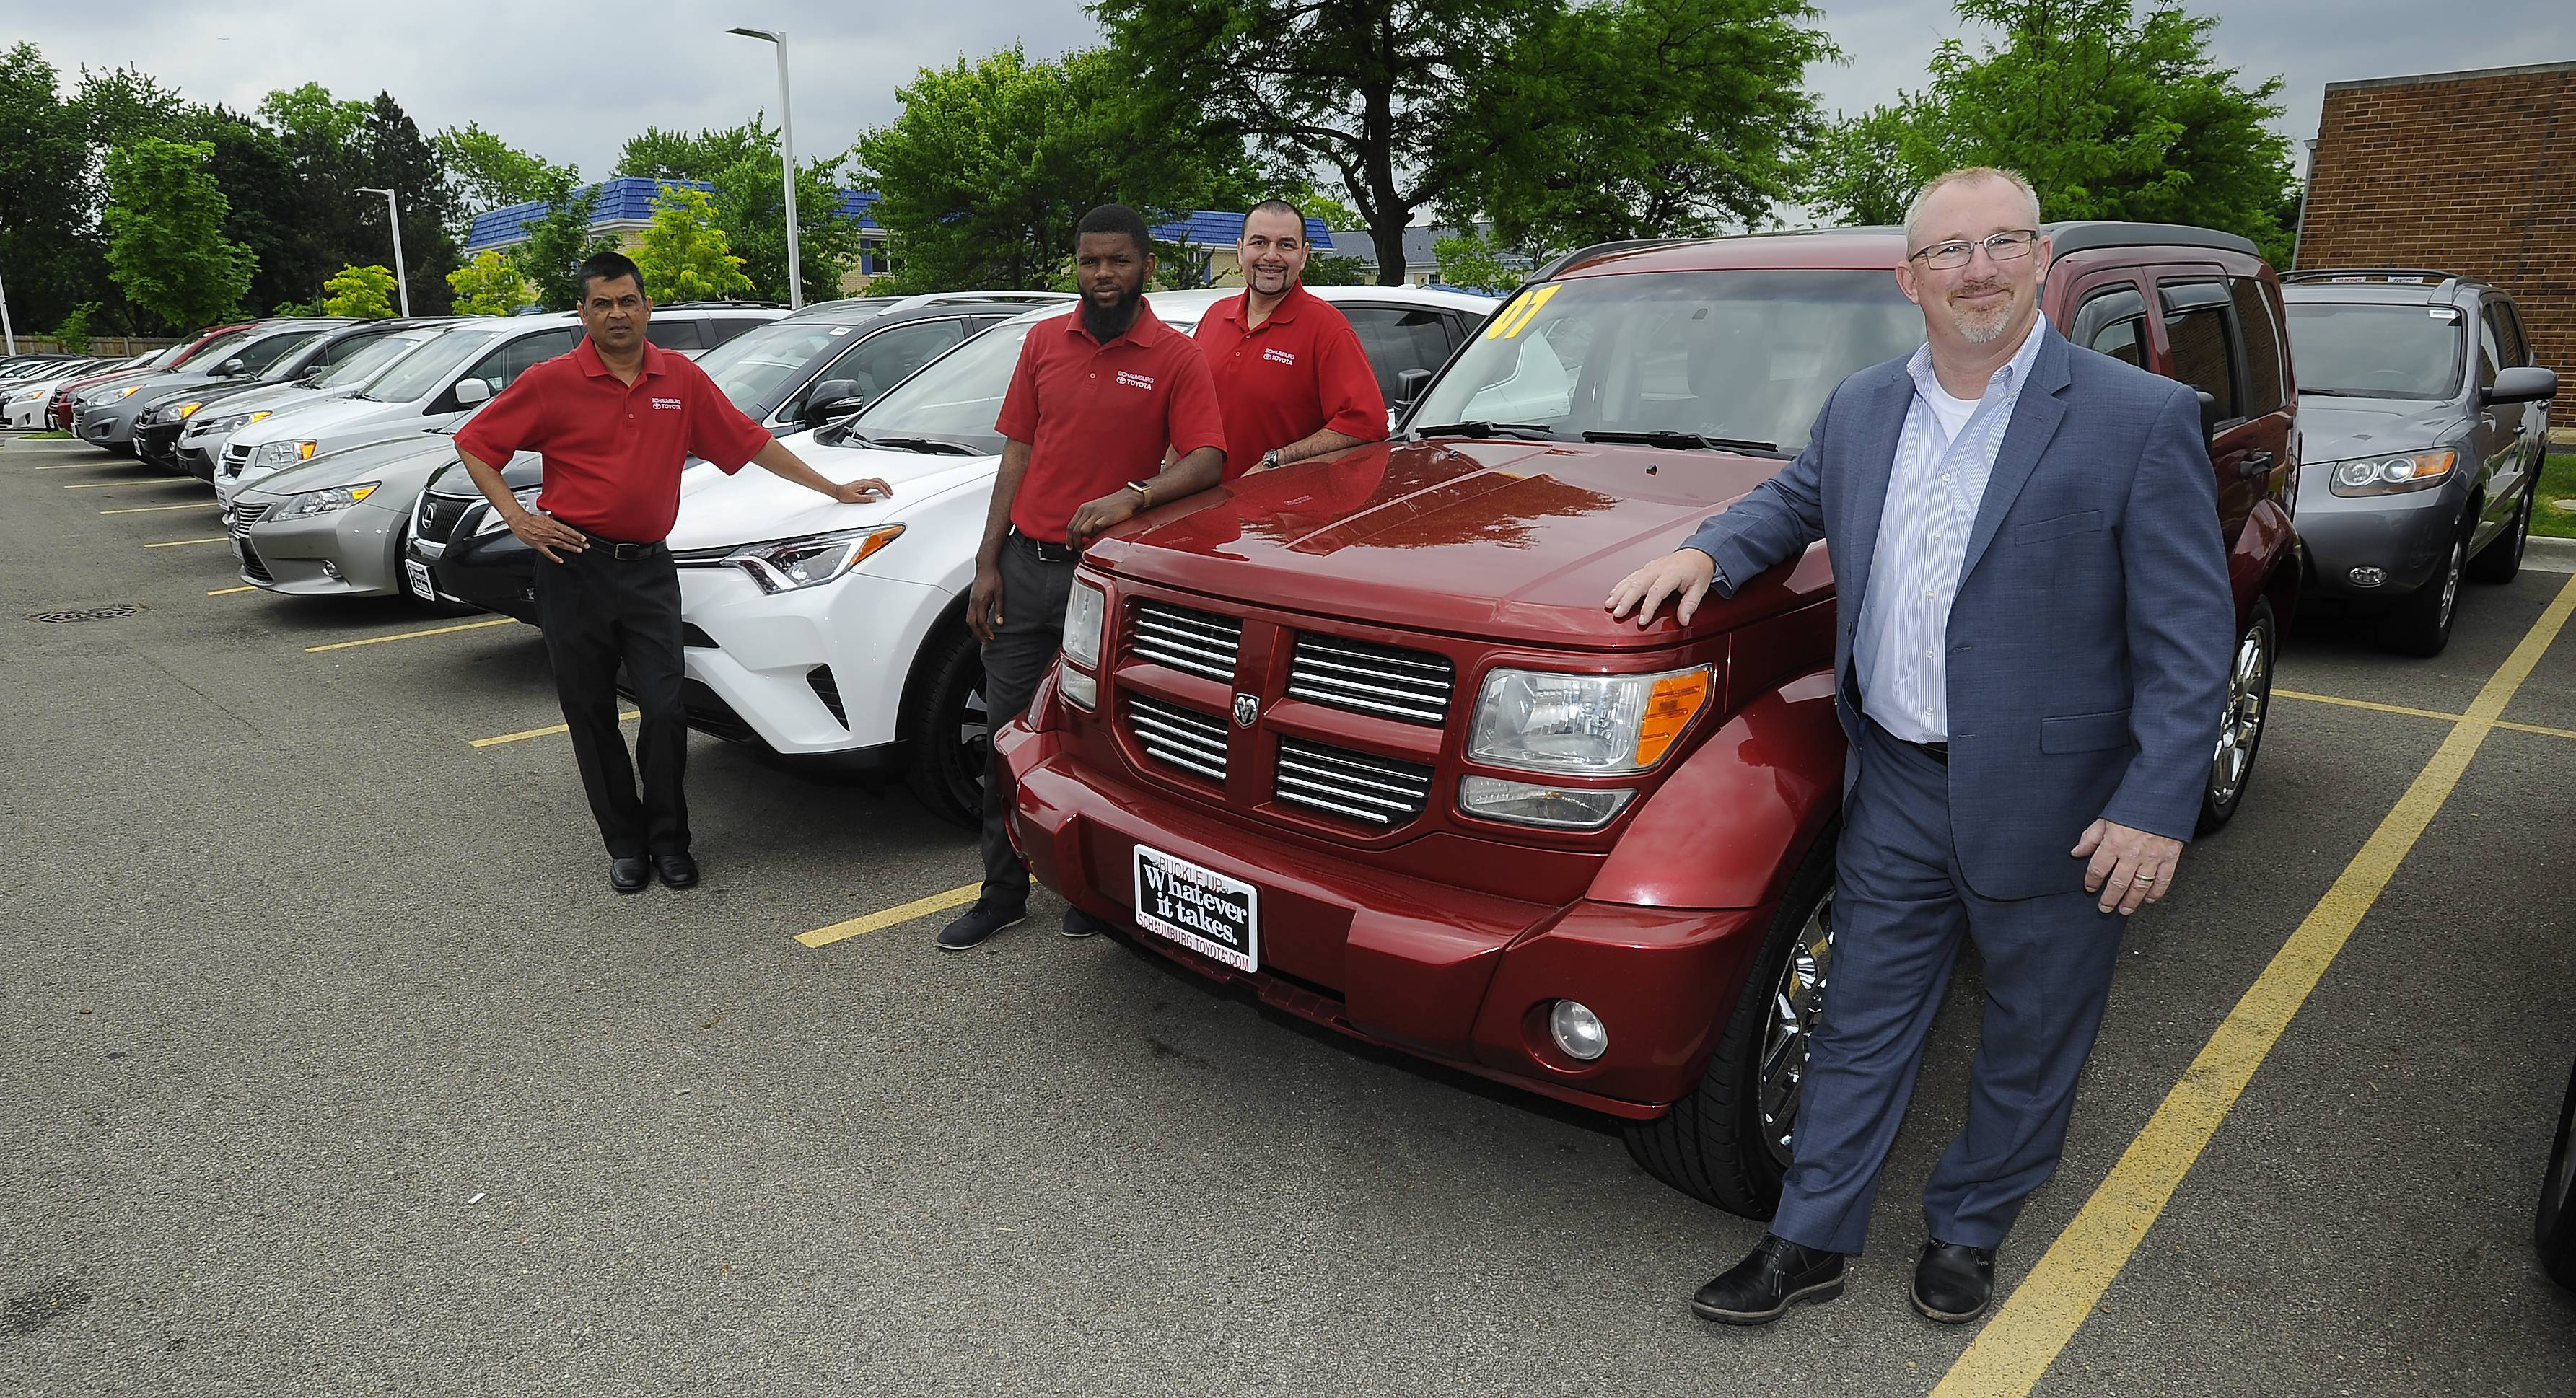 Chris Haley, general manager of Schaumburg Toyota, with Manoj Choradia, Idris Aroworade and Juan Vasquez, all sales professionals at the dealership. Sales and finance personnel will staff the tent sale through Saturday; all vehicles at the event will be sold.